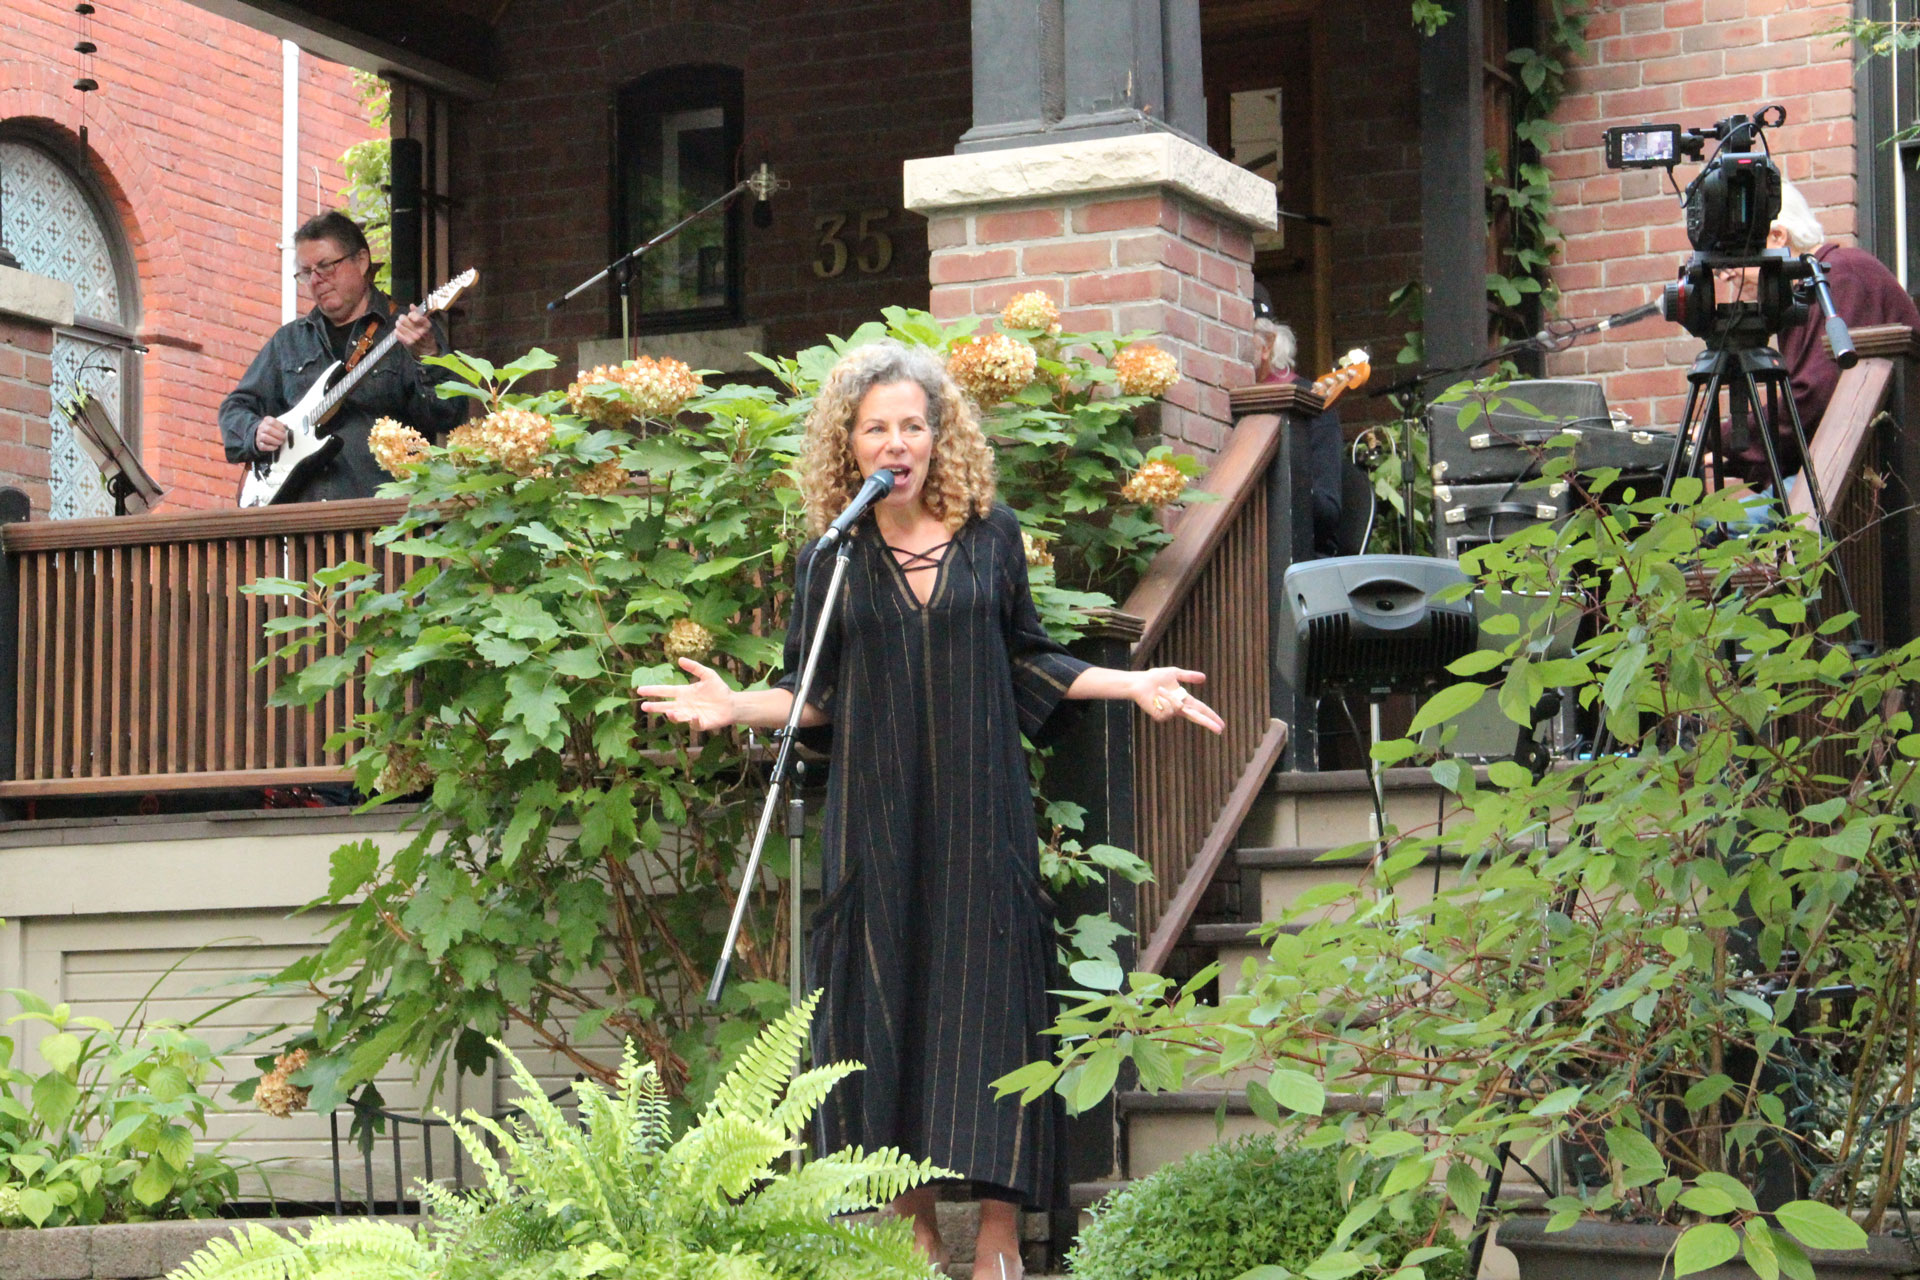 Stephanie Martin performing at the Porch Concert